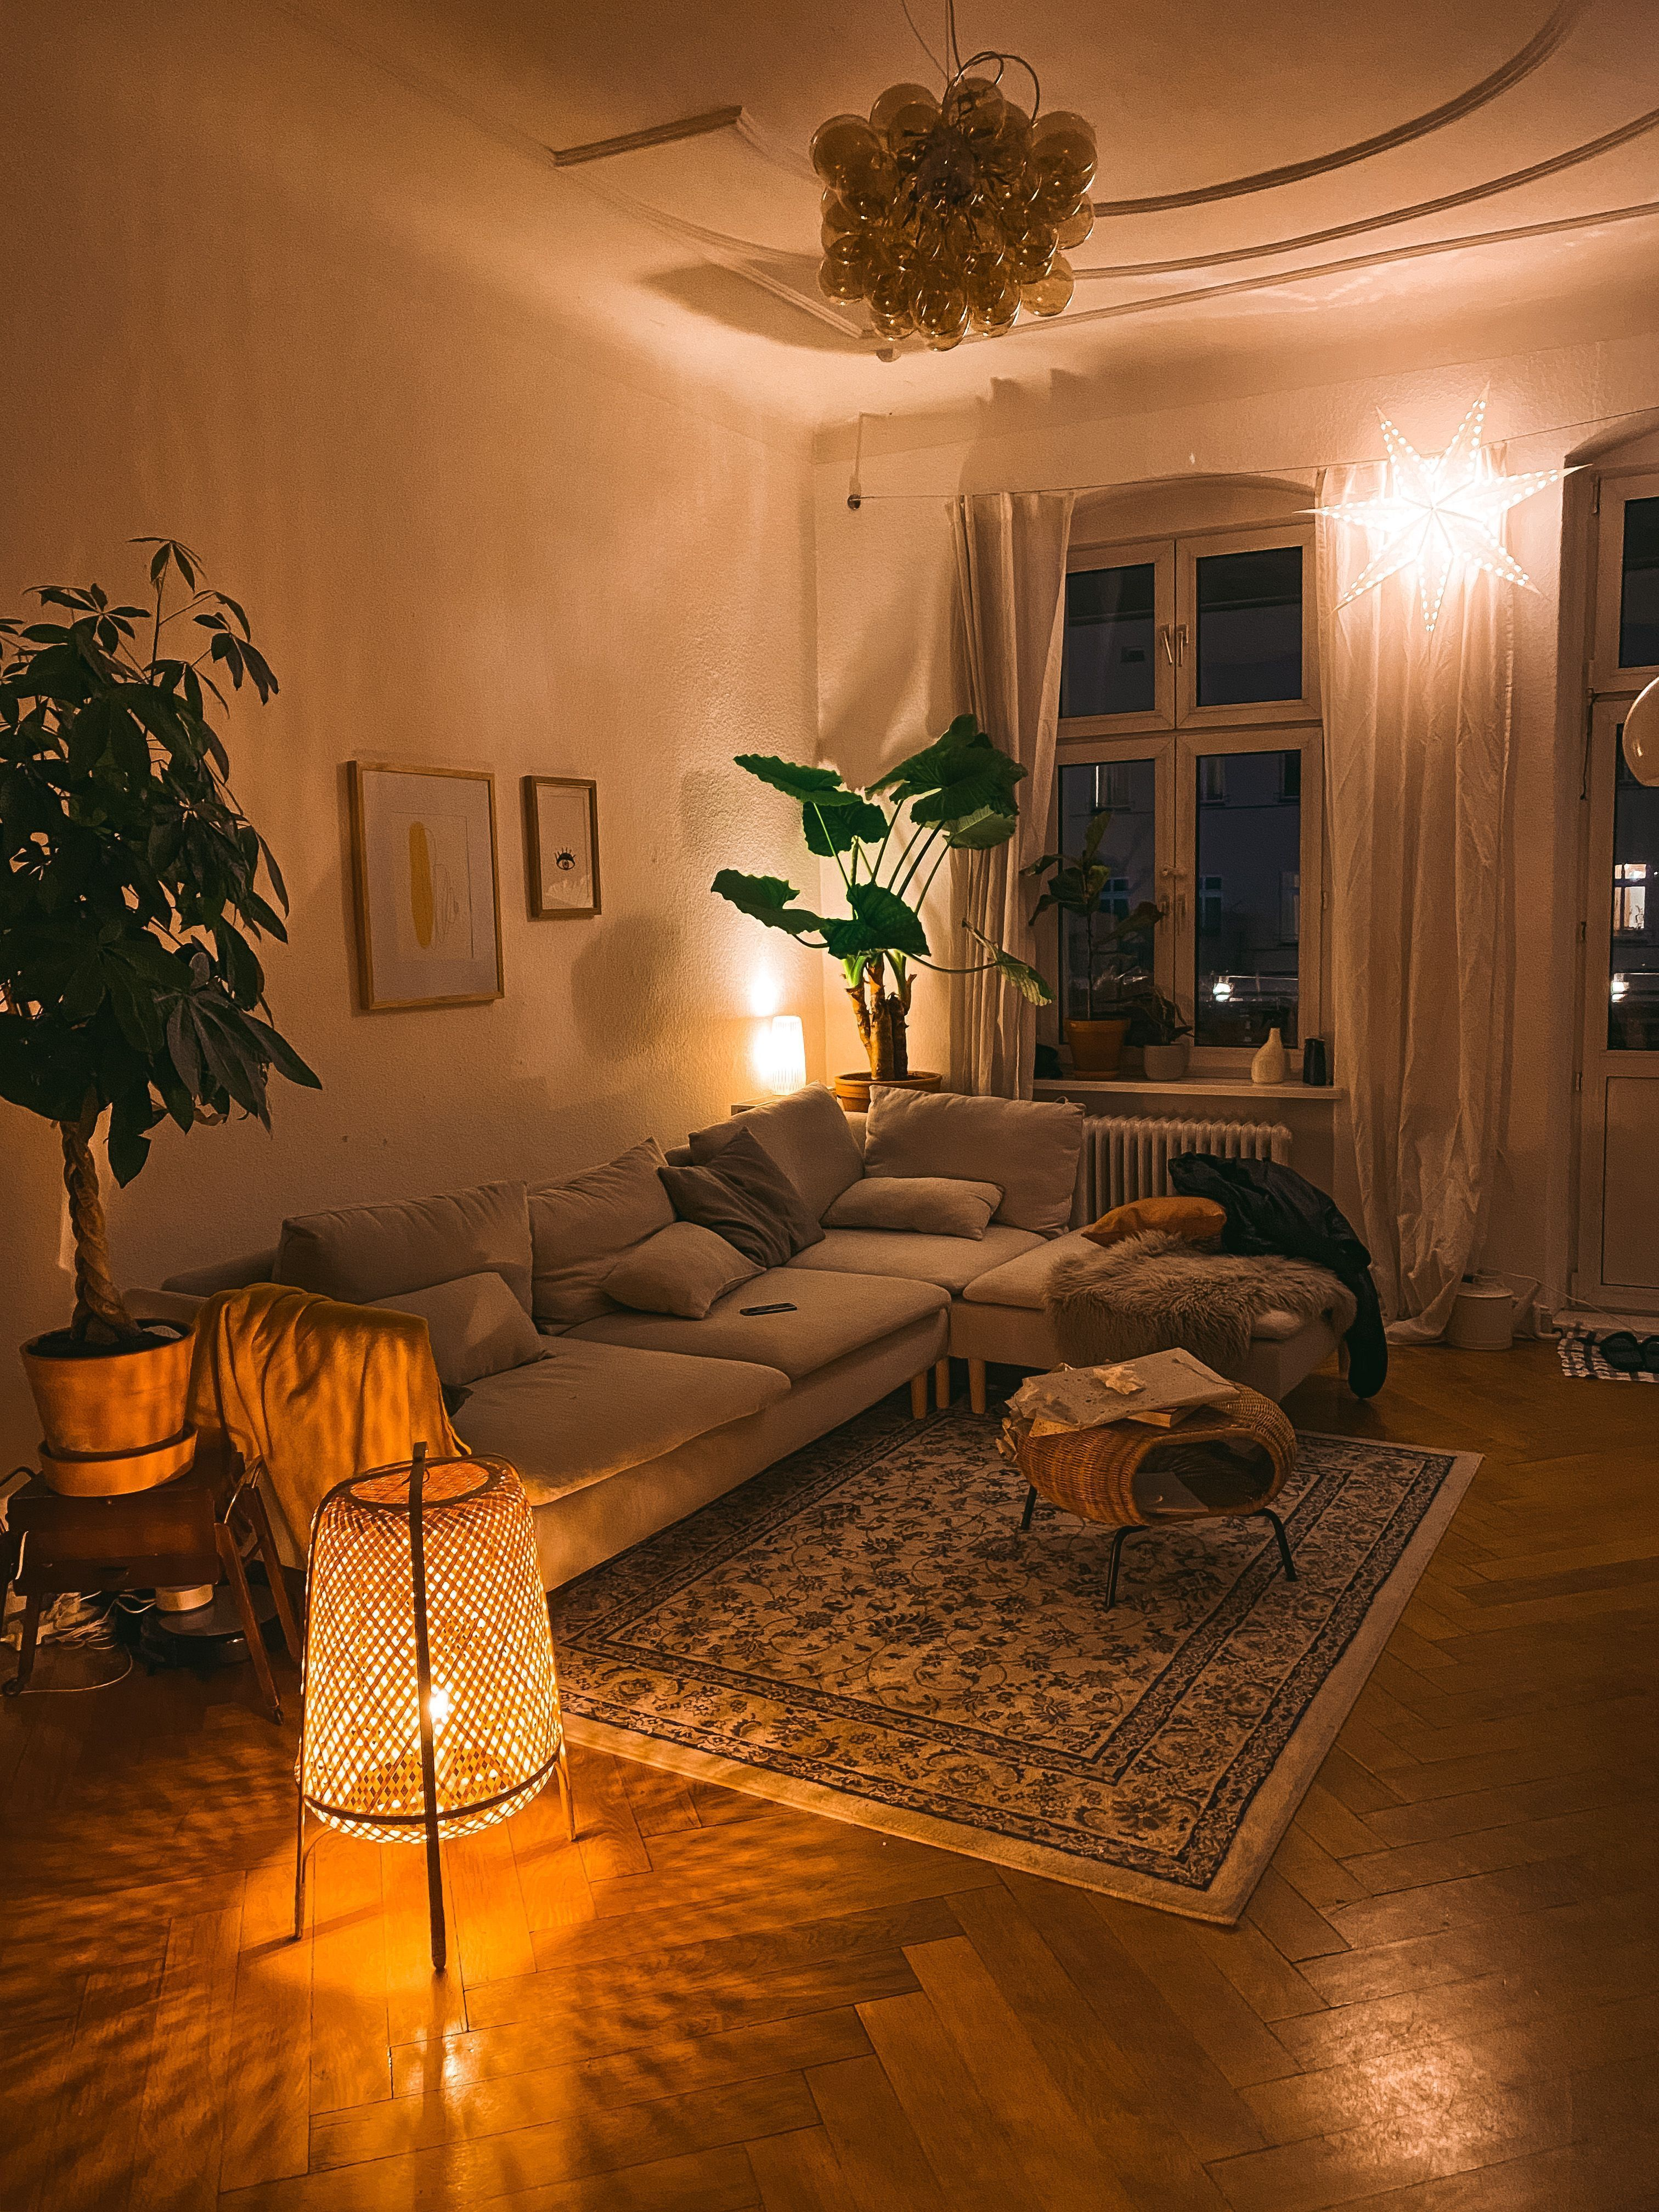 Photo of The 3 pillars of cosiness in golden autumn – with the 3 pillars   Anbau Haus Wohnzimmer